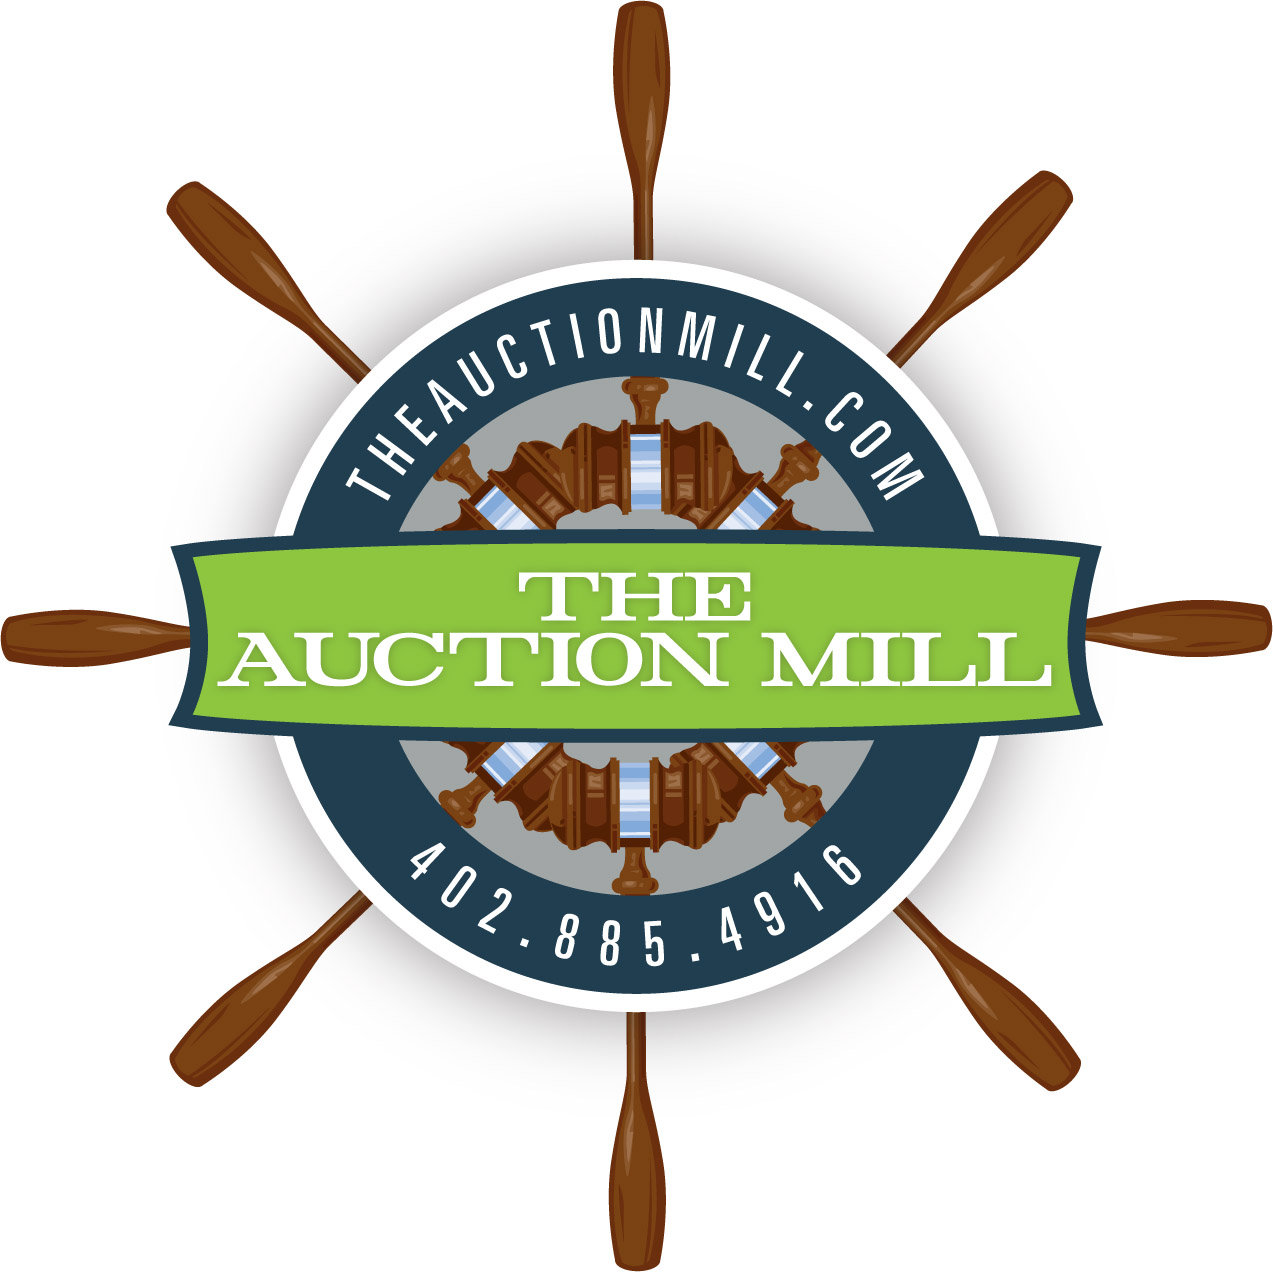 The Auction Mill